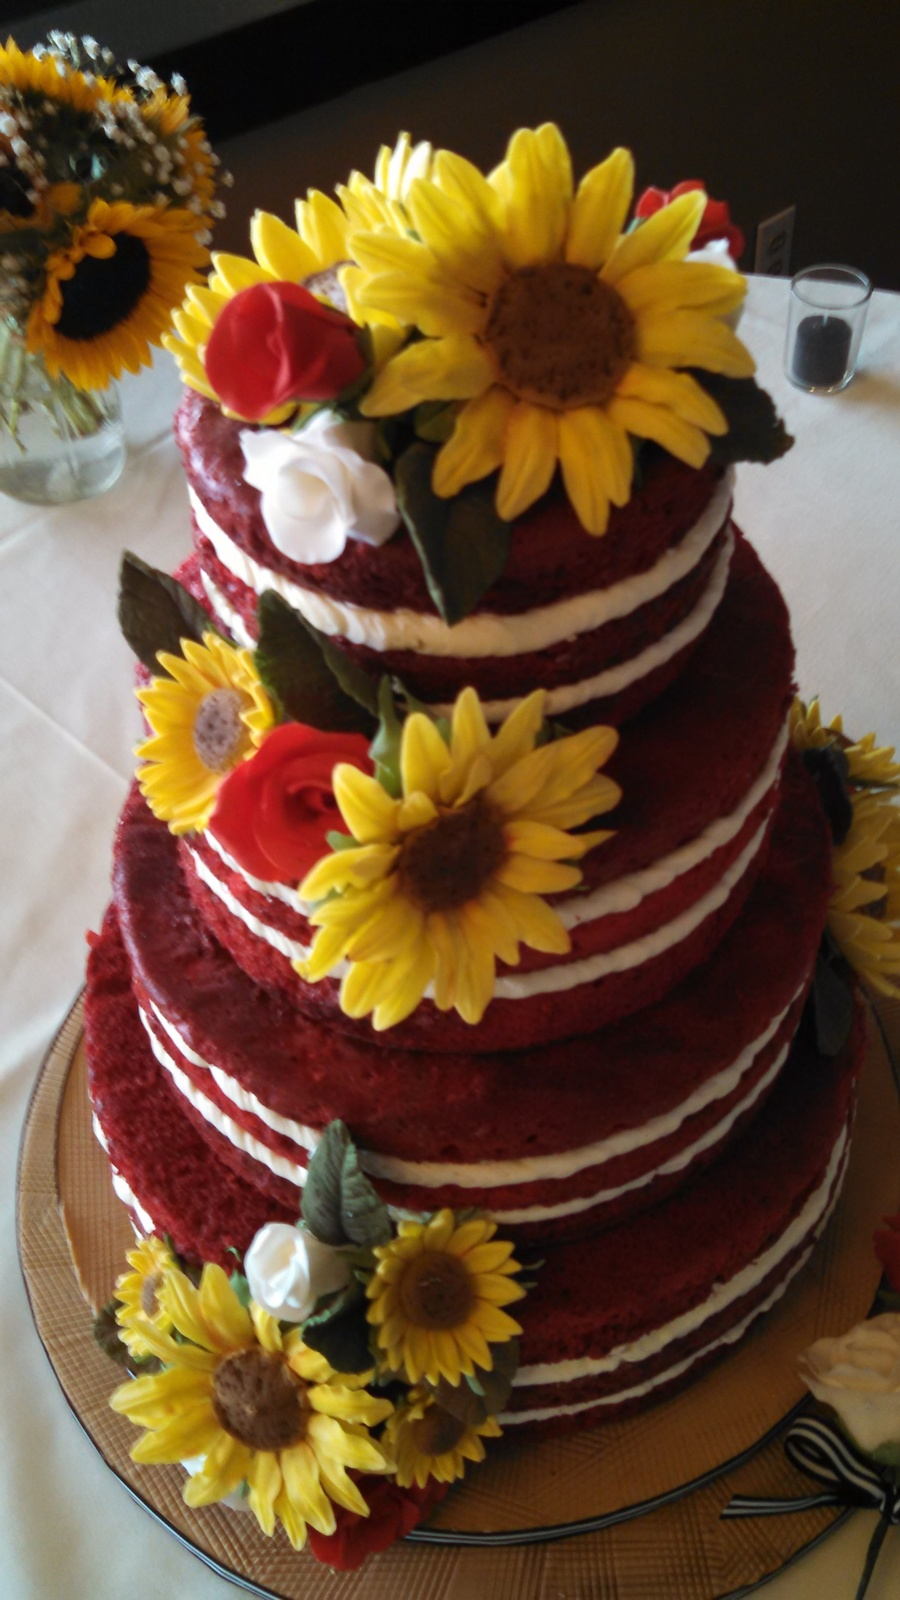 Red Velvet Rustic Cake Recipe